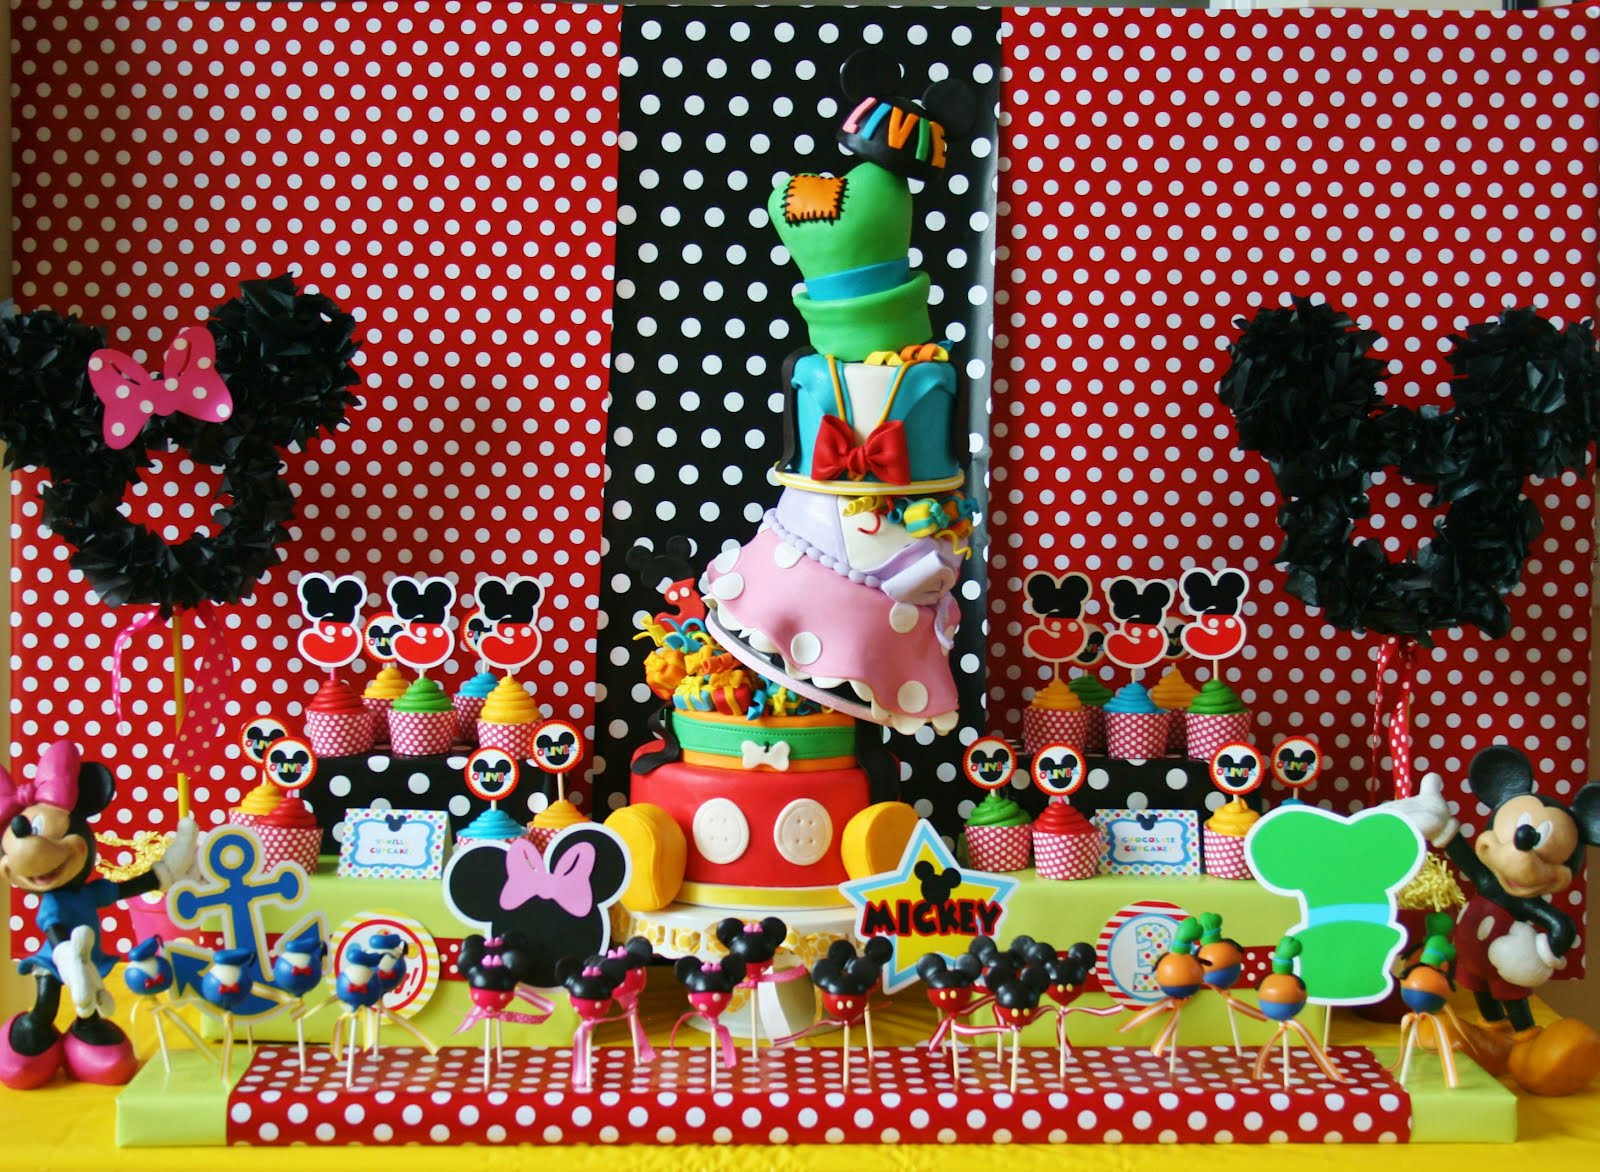 ... Disney Birthday Party Theme ... & birthday party themes Archives | Bubbles Crew Parties